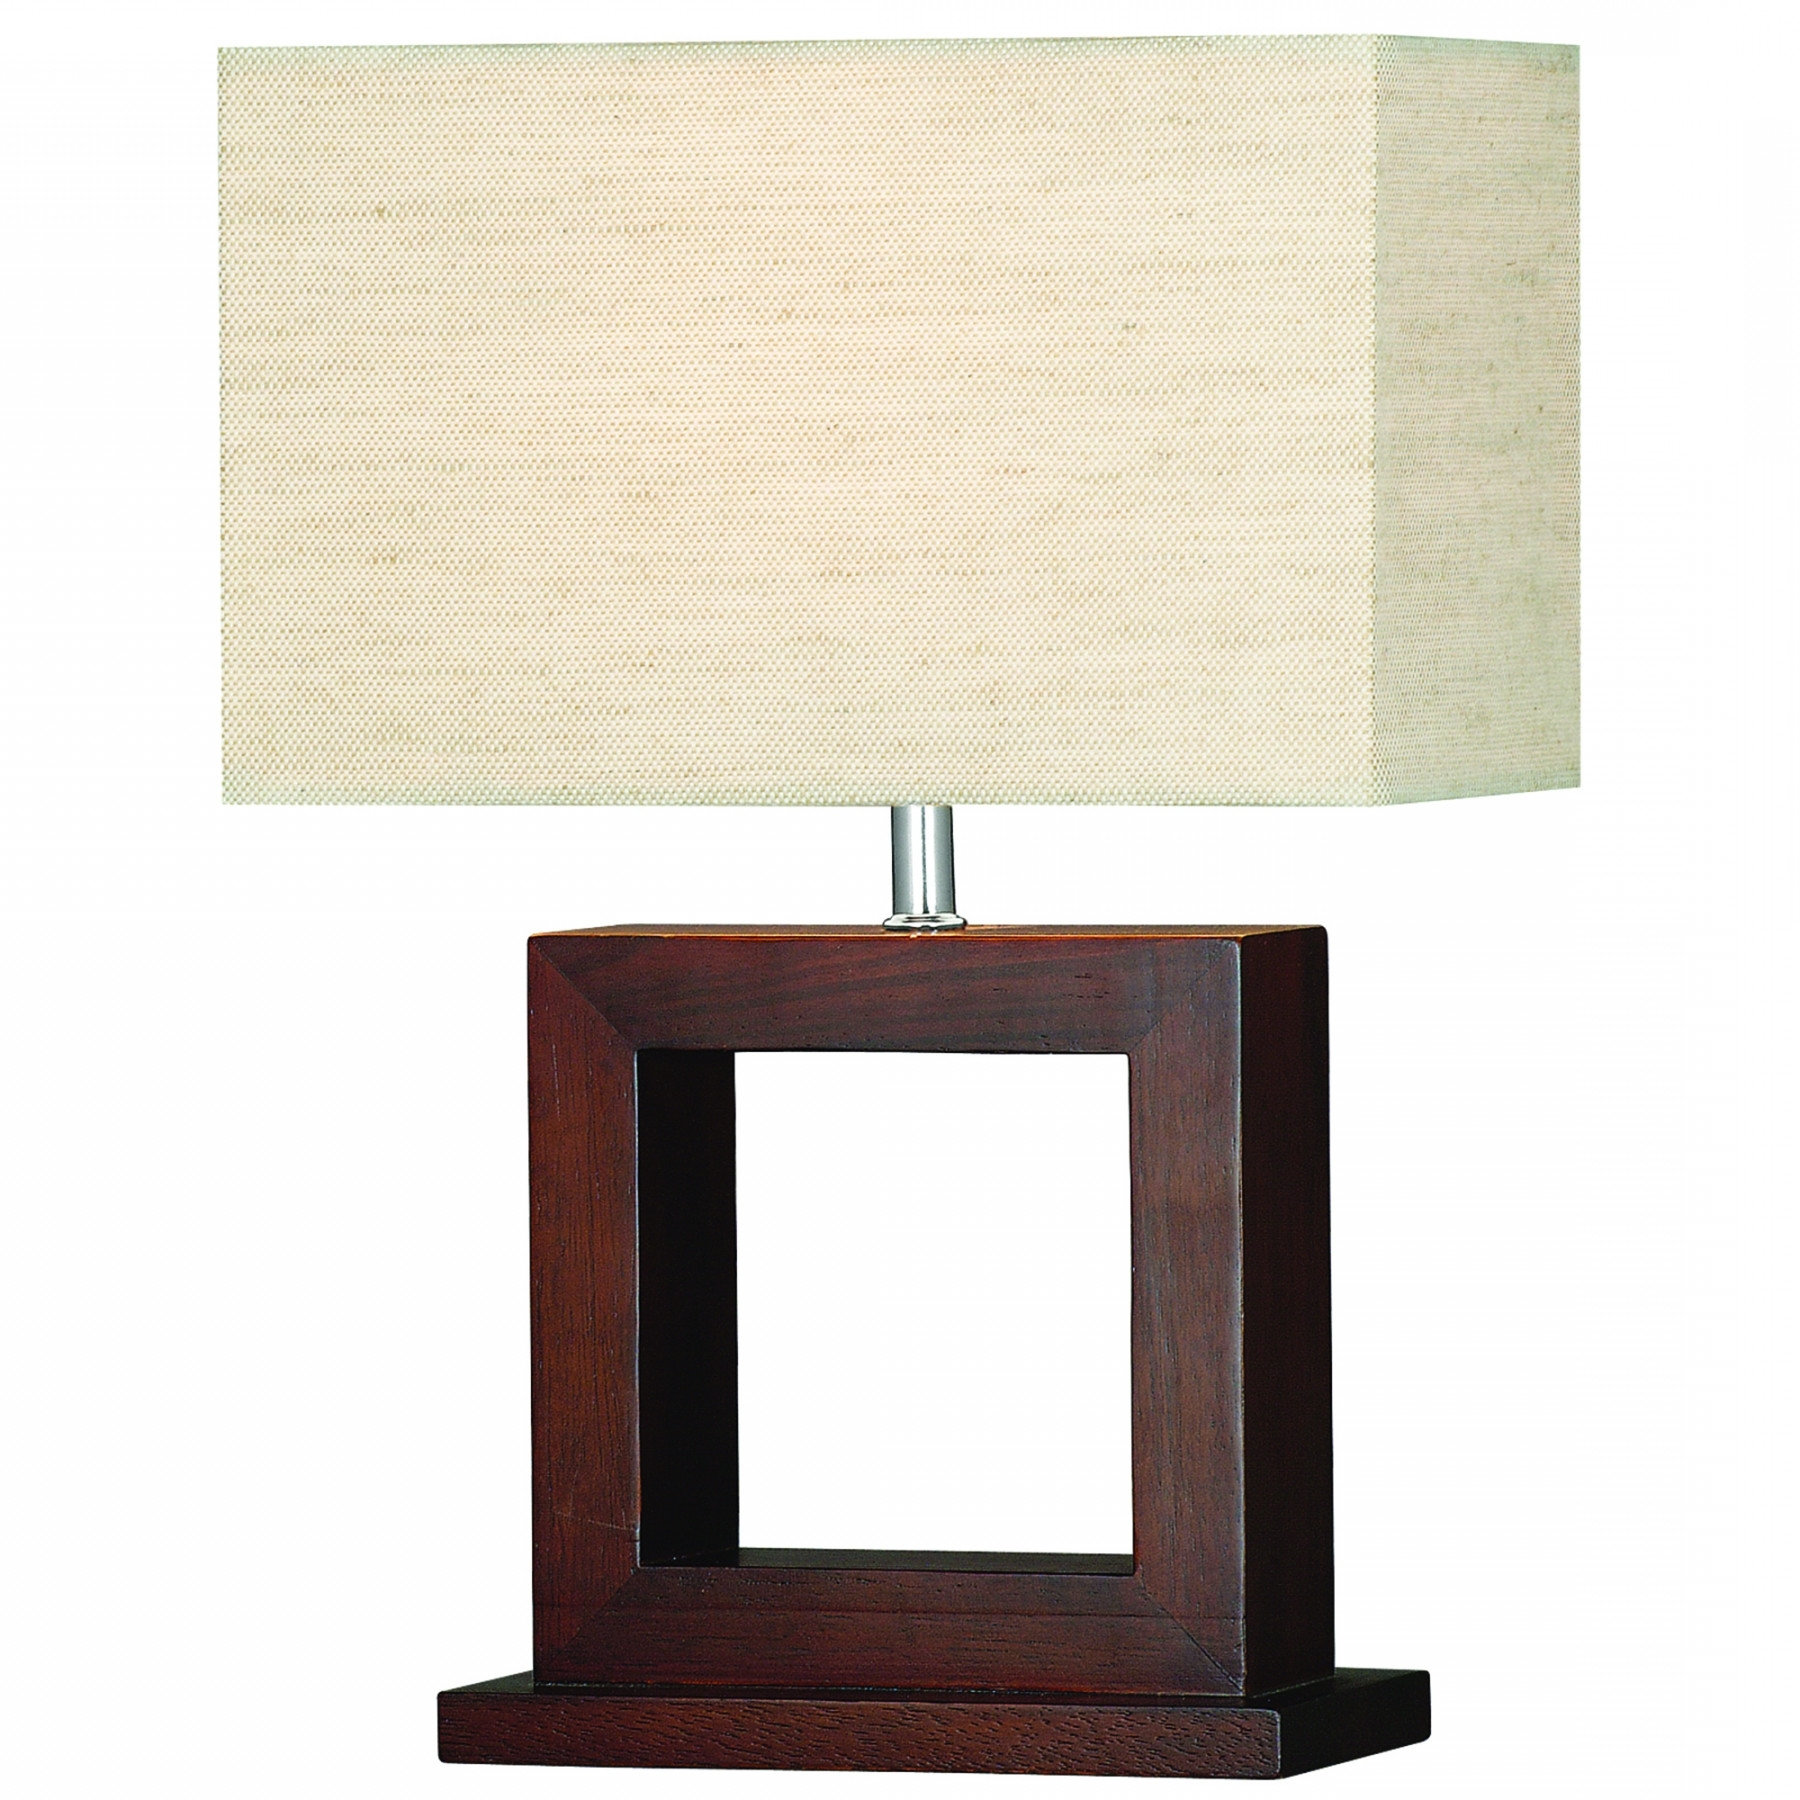 Cosmopolitan Dark Wood Table Lamp With Matching Oblong Shade Pertaining To 2018 Living Room Touch Table Lamps (View 15 of 15)